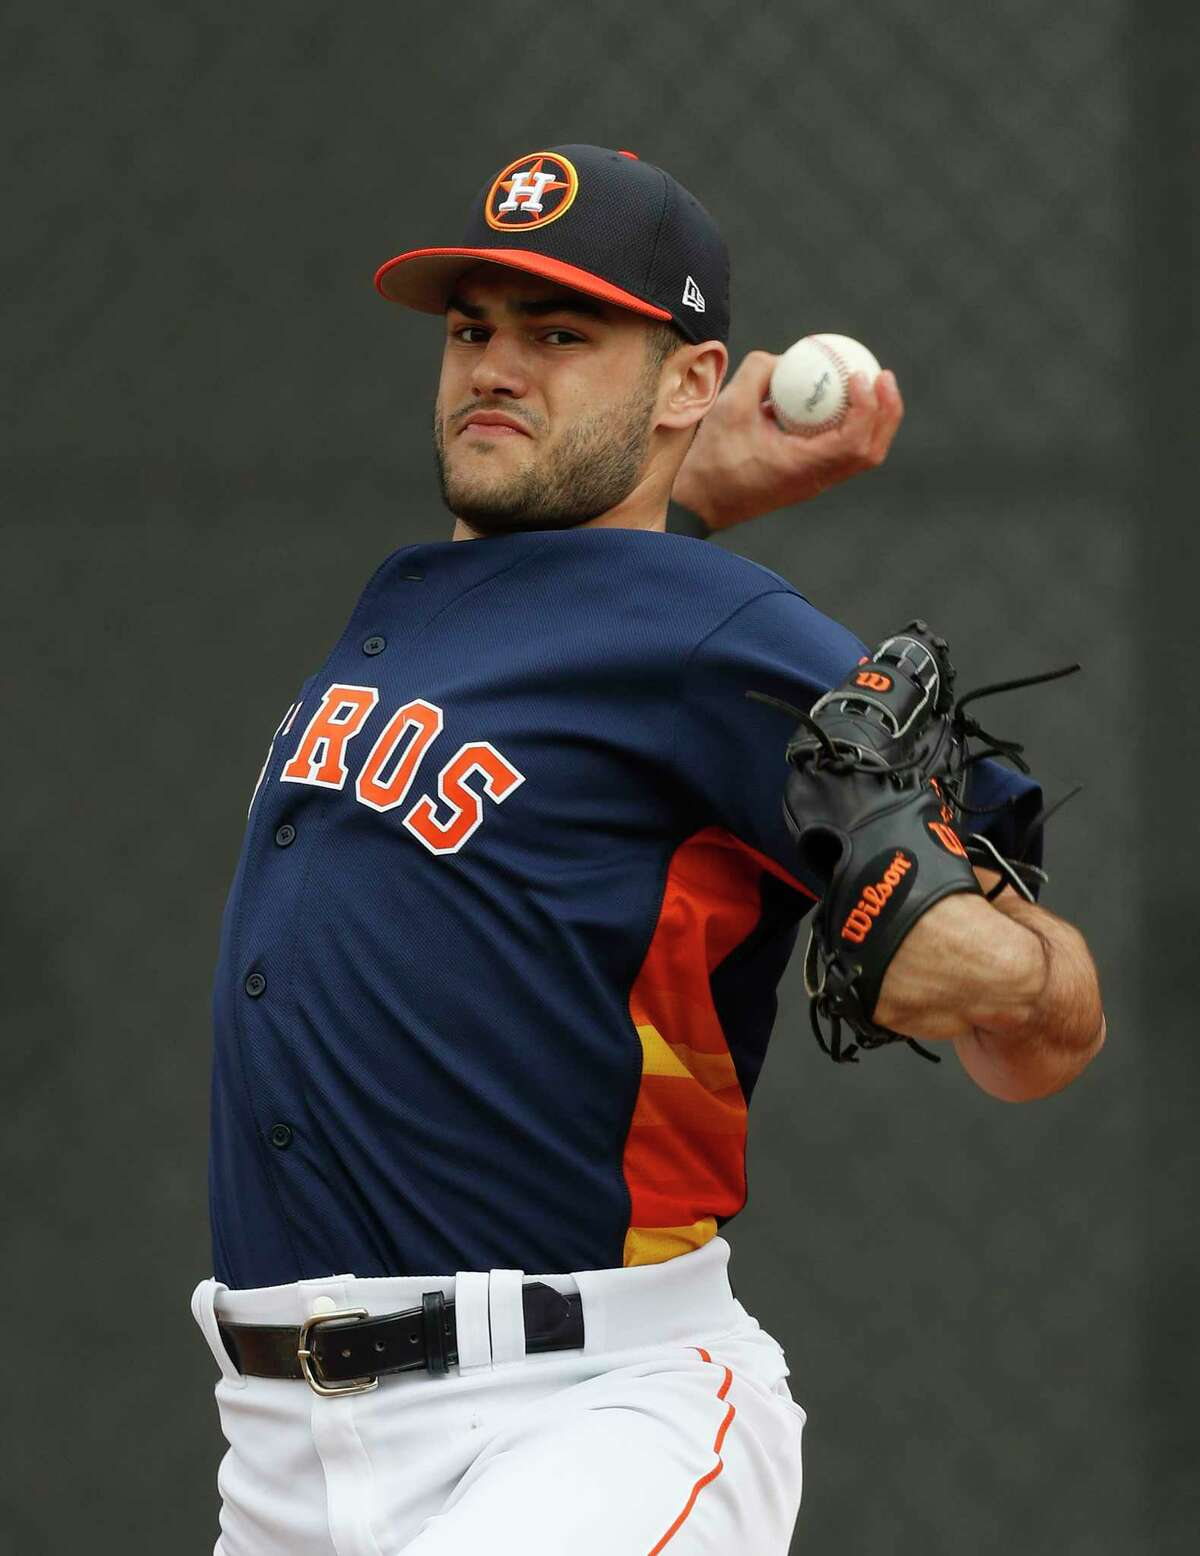 Though he had a 7.20 ERA this spring, perhaps partly attributable to extensive experimentation with a new change-up, Lance McCullers emerged healthy.